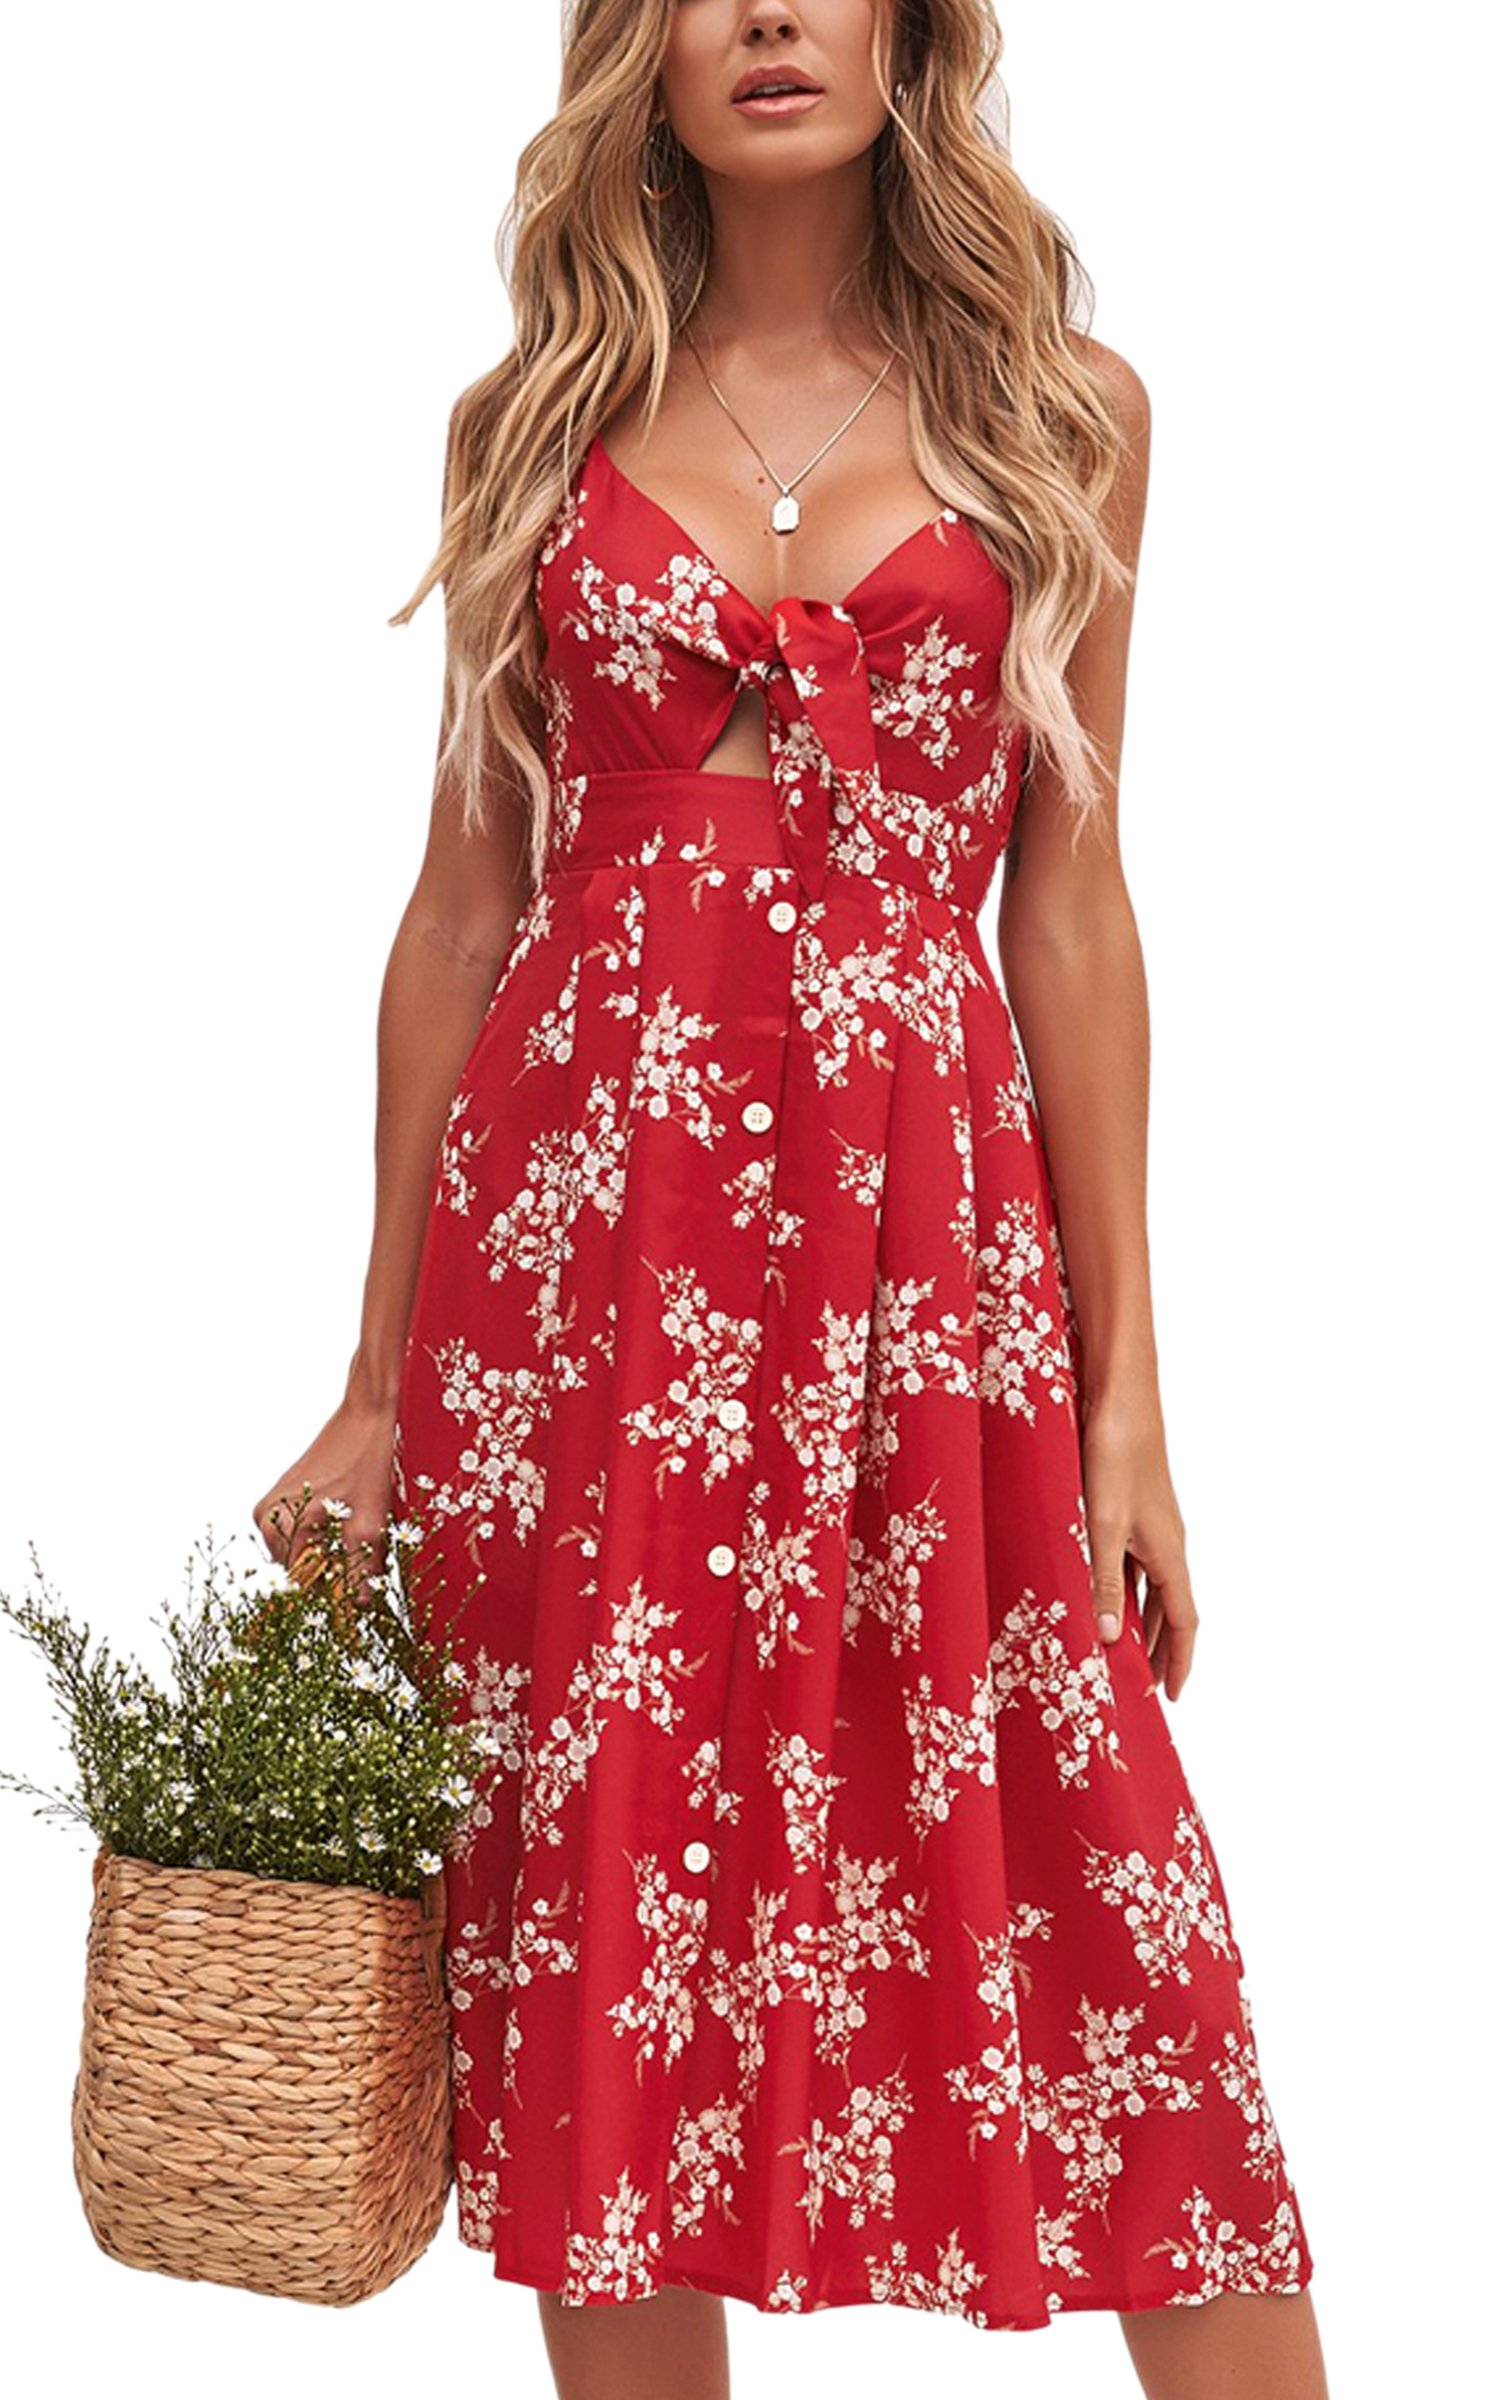 b8d541e84e9 Galleon - ECOWISH Womens Dresses Summer Tie Front V-Neck Spaghetti Strap  Button Down A-Line Backless Swing Midi Dress 1603 Red S